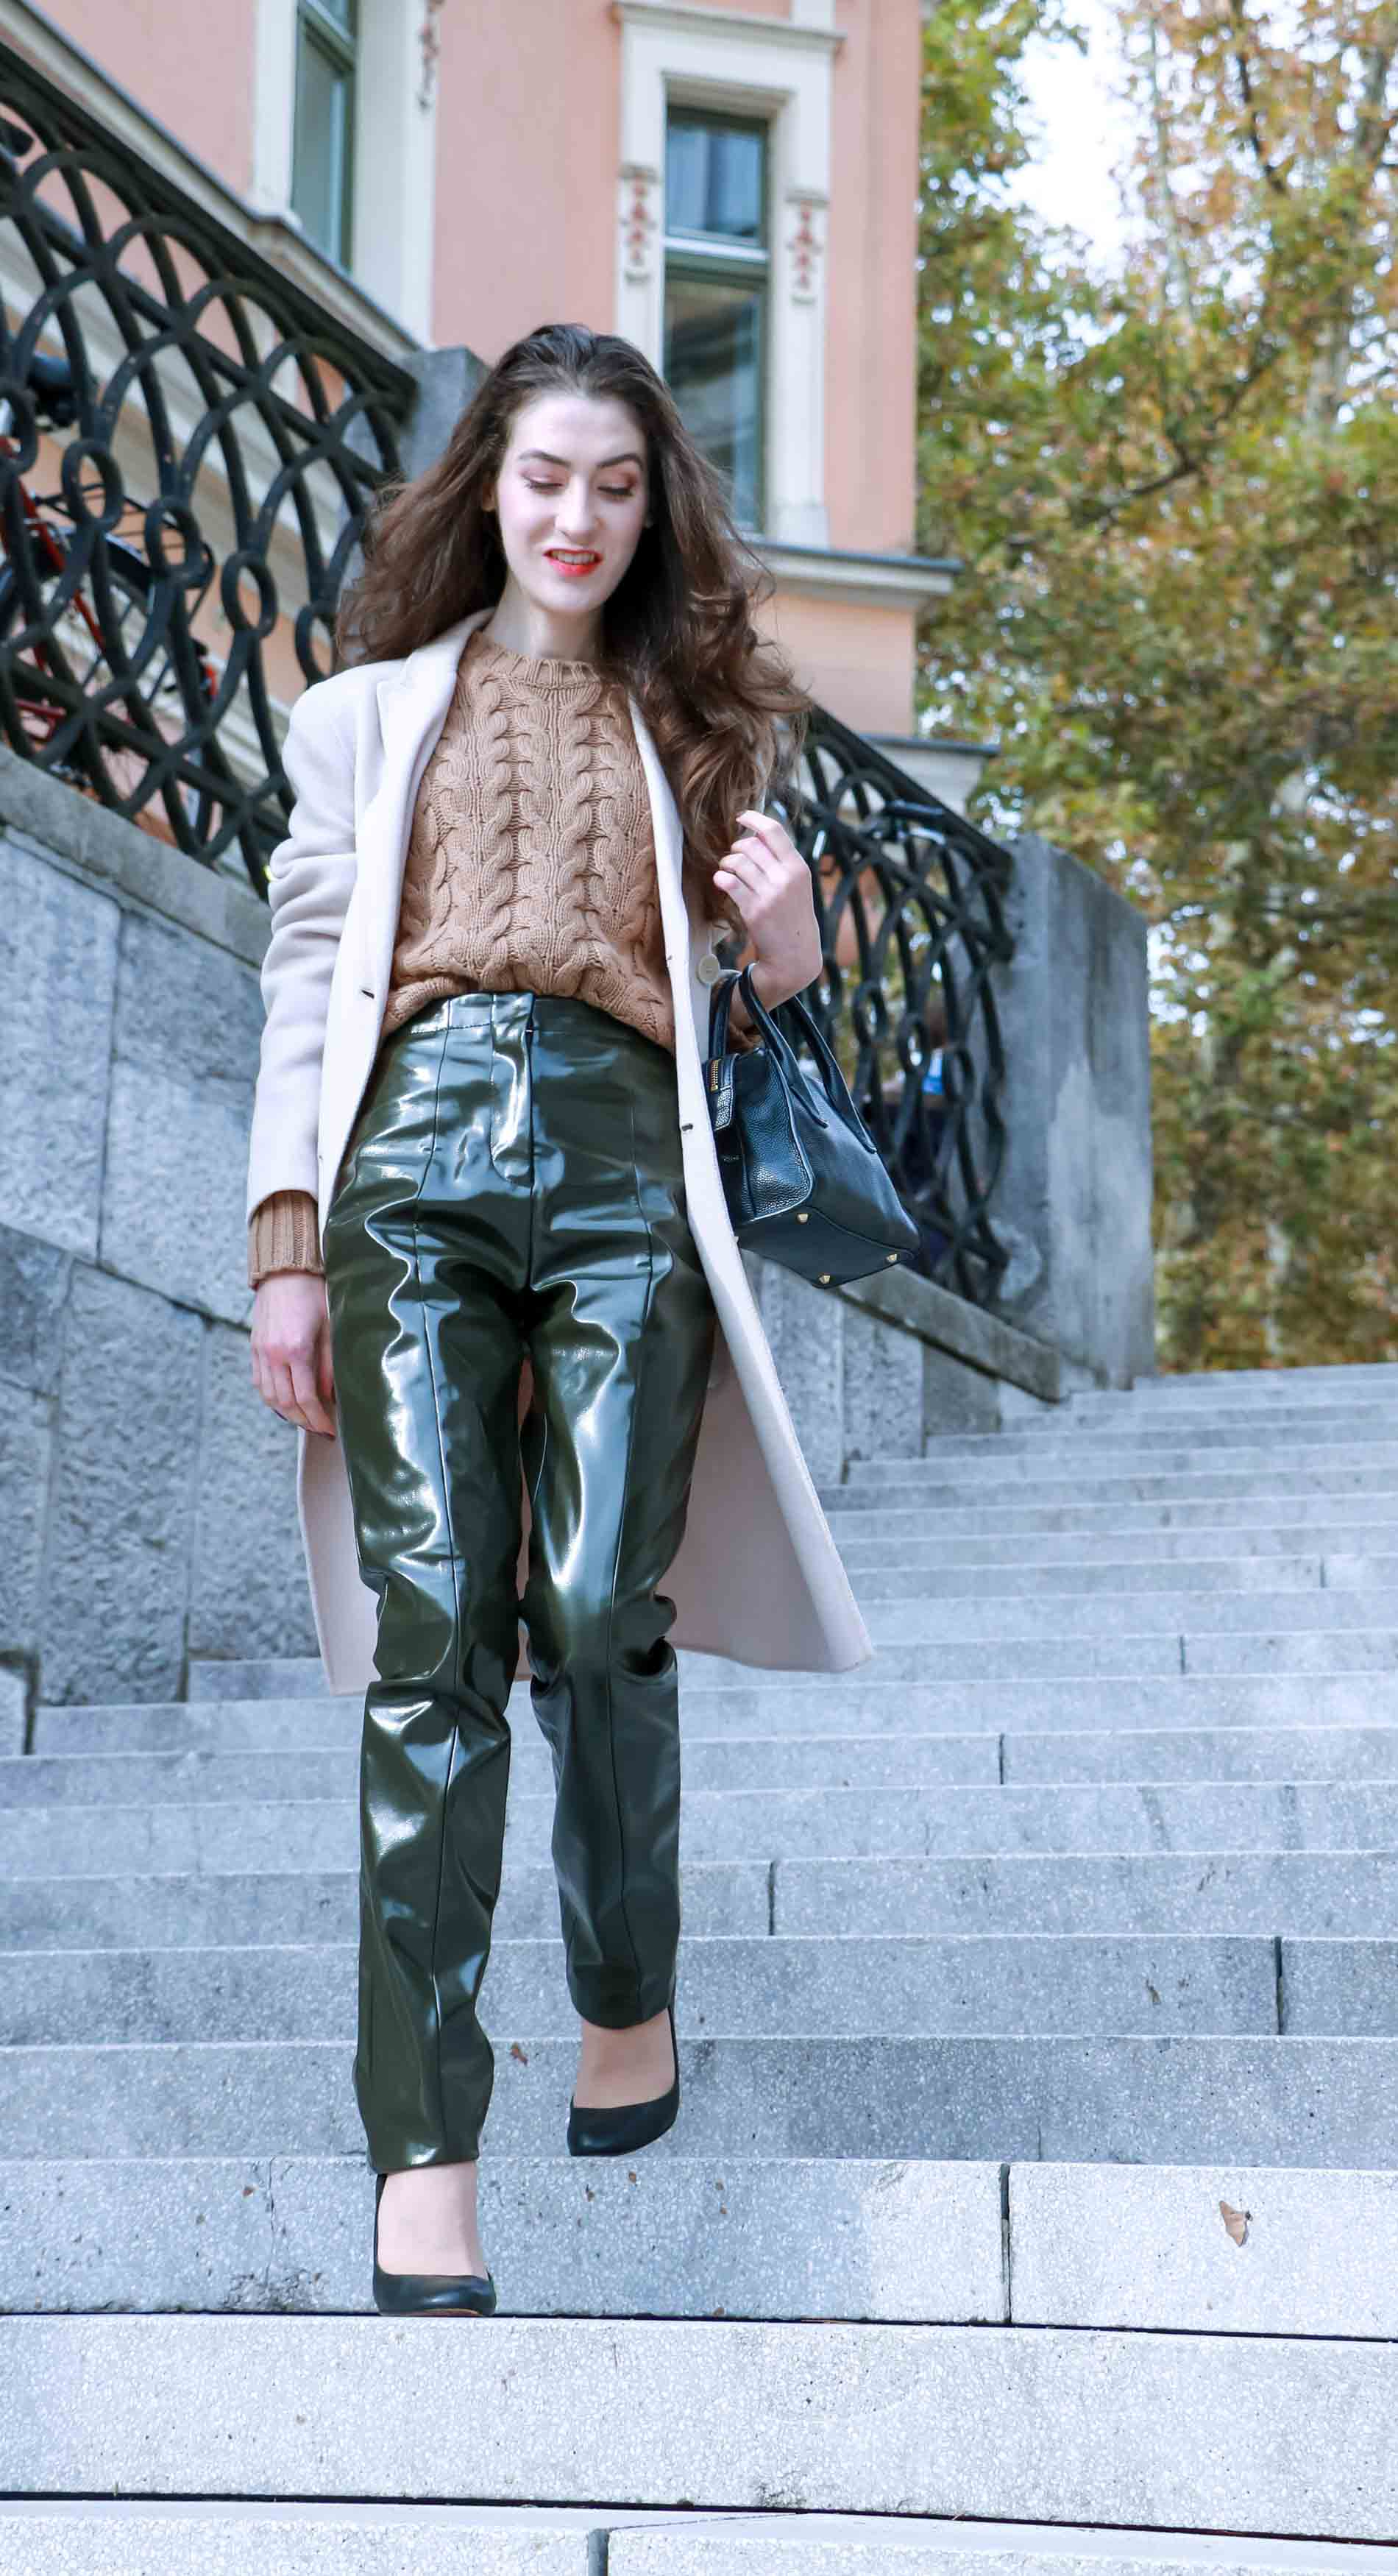 Fashion Blogger Veronika Lipar of Brunette from Wall Street dressed in Acne Studios vinyl pants, Weekened Maxmara double breasted pastel coat, Max Mara camel cable knit sweater and black Aquazzura pumps, black tote bag while walking down the stairs